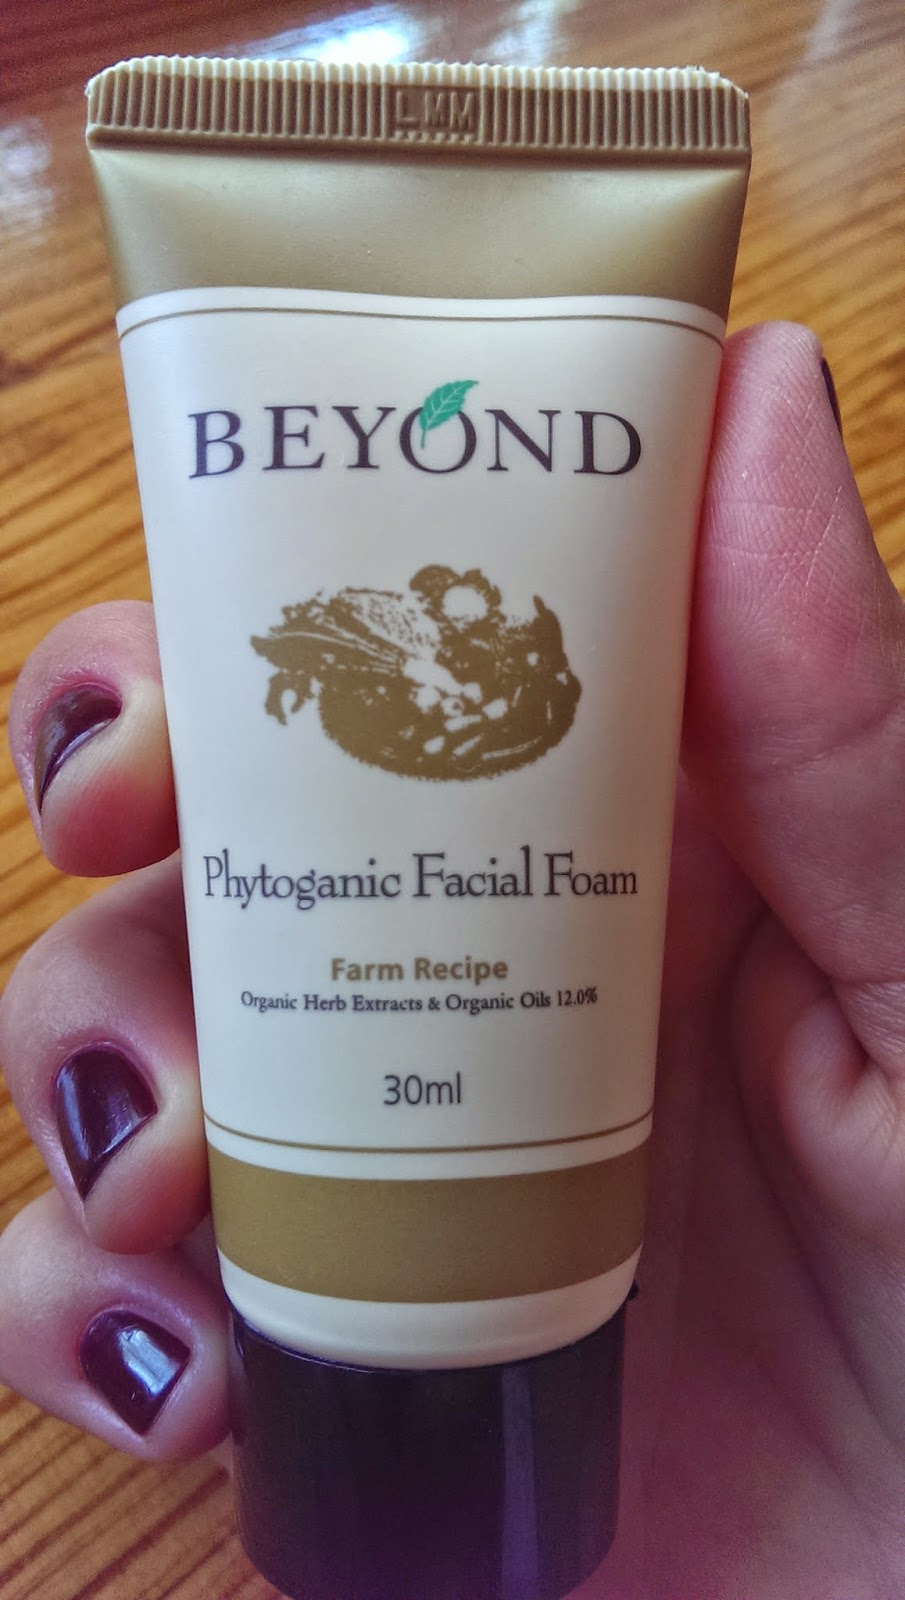 Beyond Farm Phytoganic Facial Foam